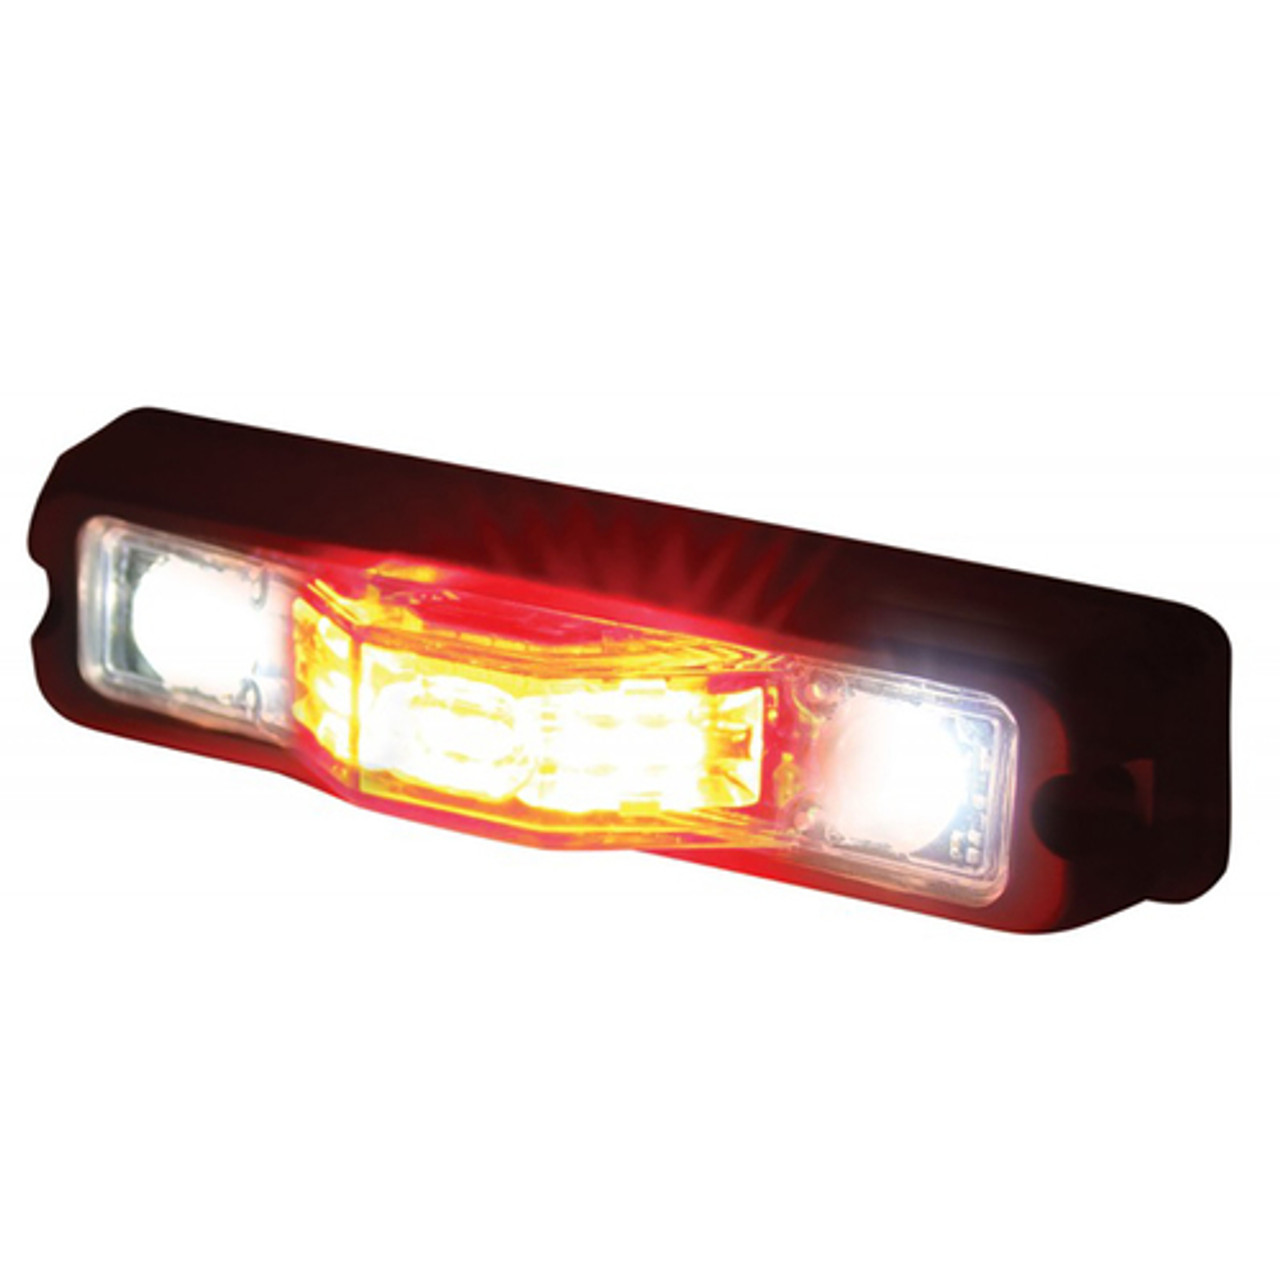 Code-3 M180 Surface/Flush or Intersection Mount, Ground/Puddle Light Light Head, Multi/ Dual Color M180SMC, 1.5 inches thick